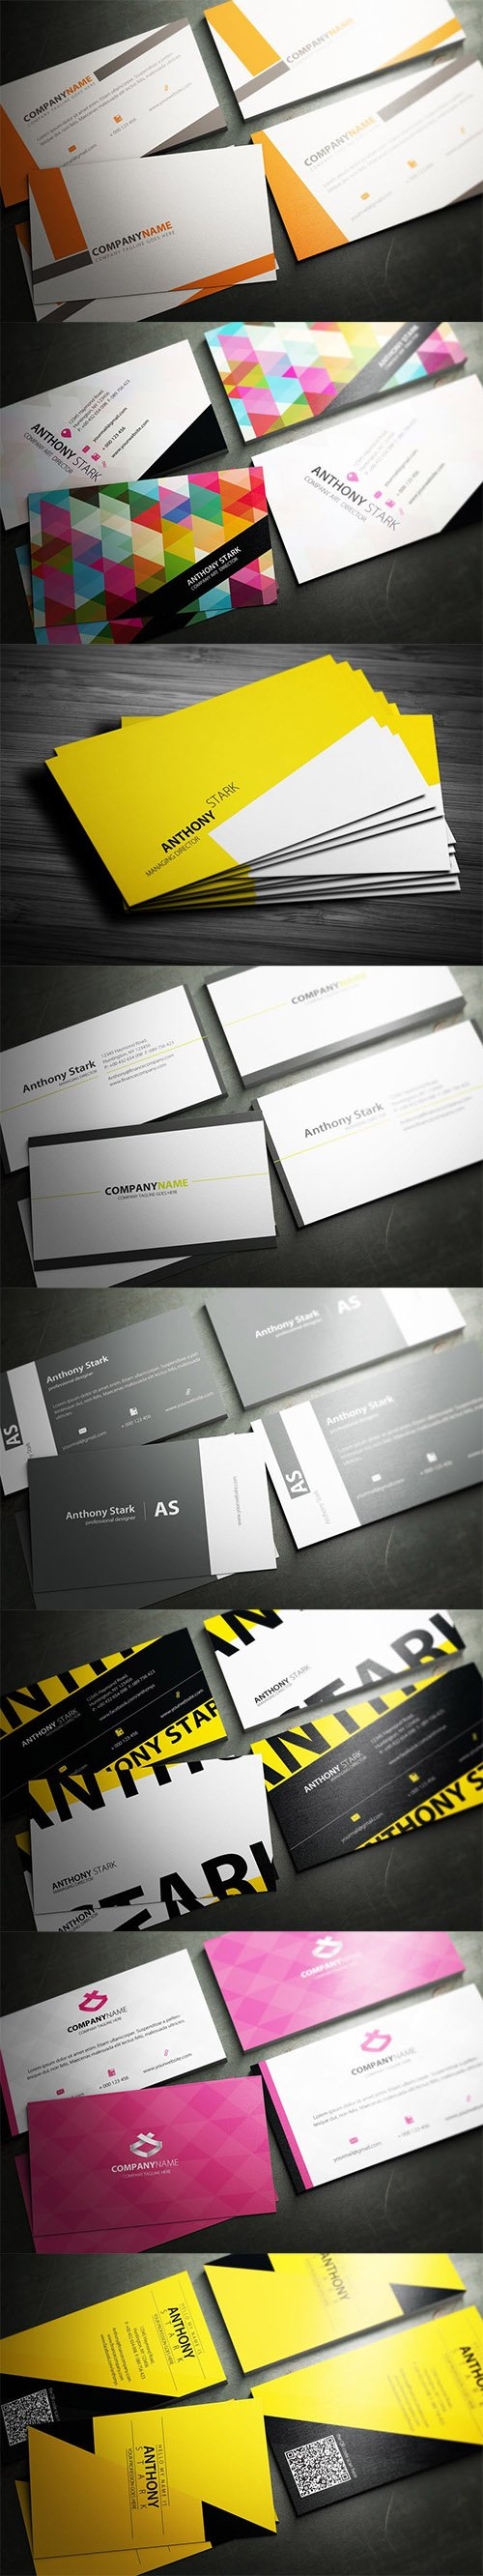 8 Business Cards Design Templates